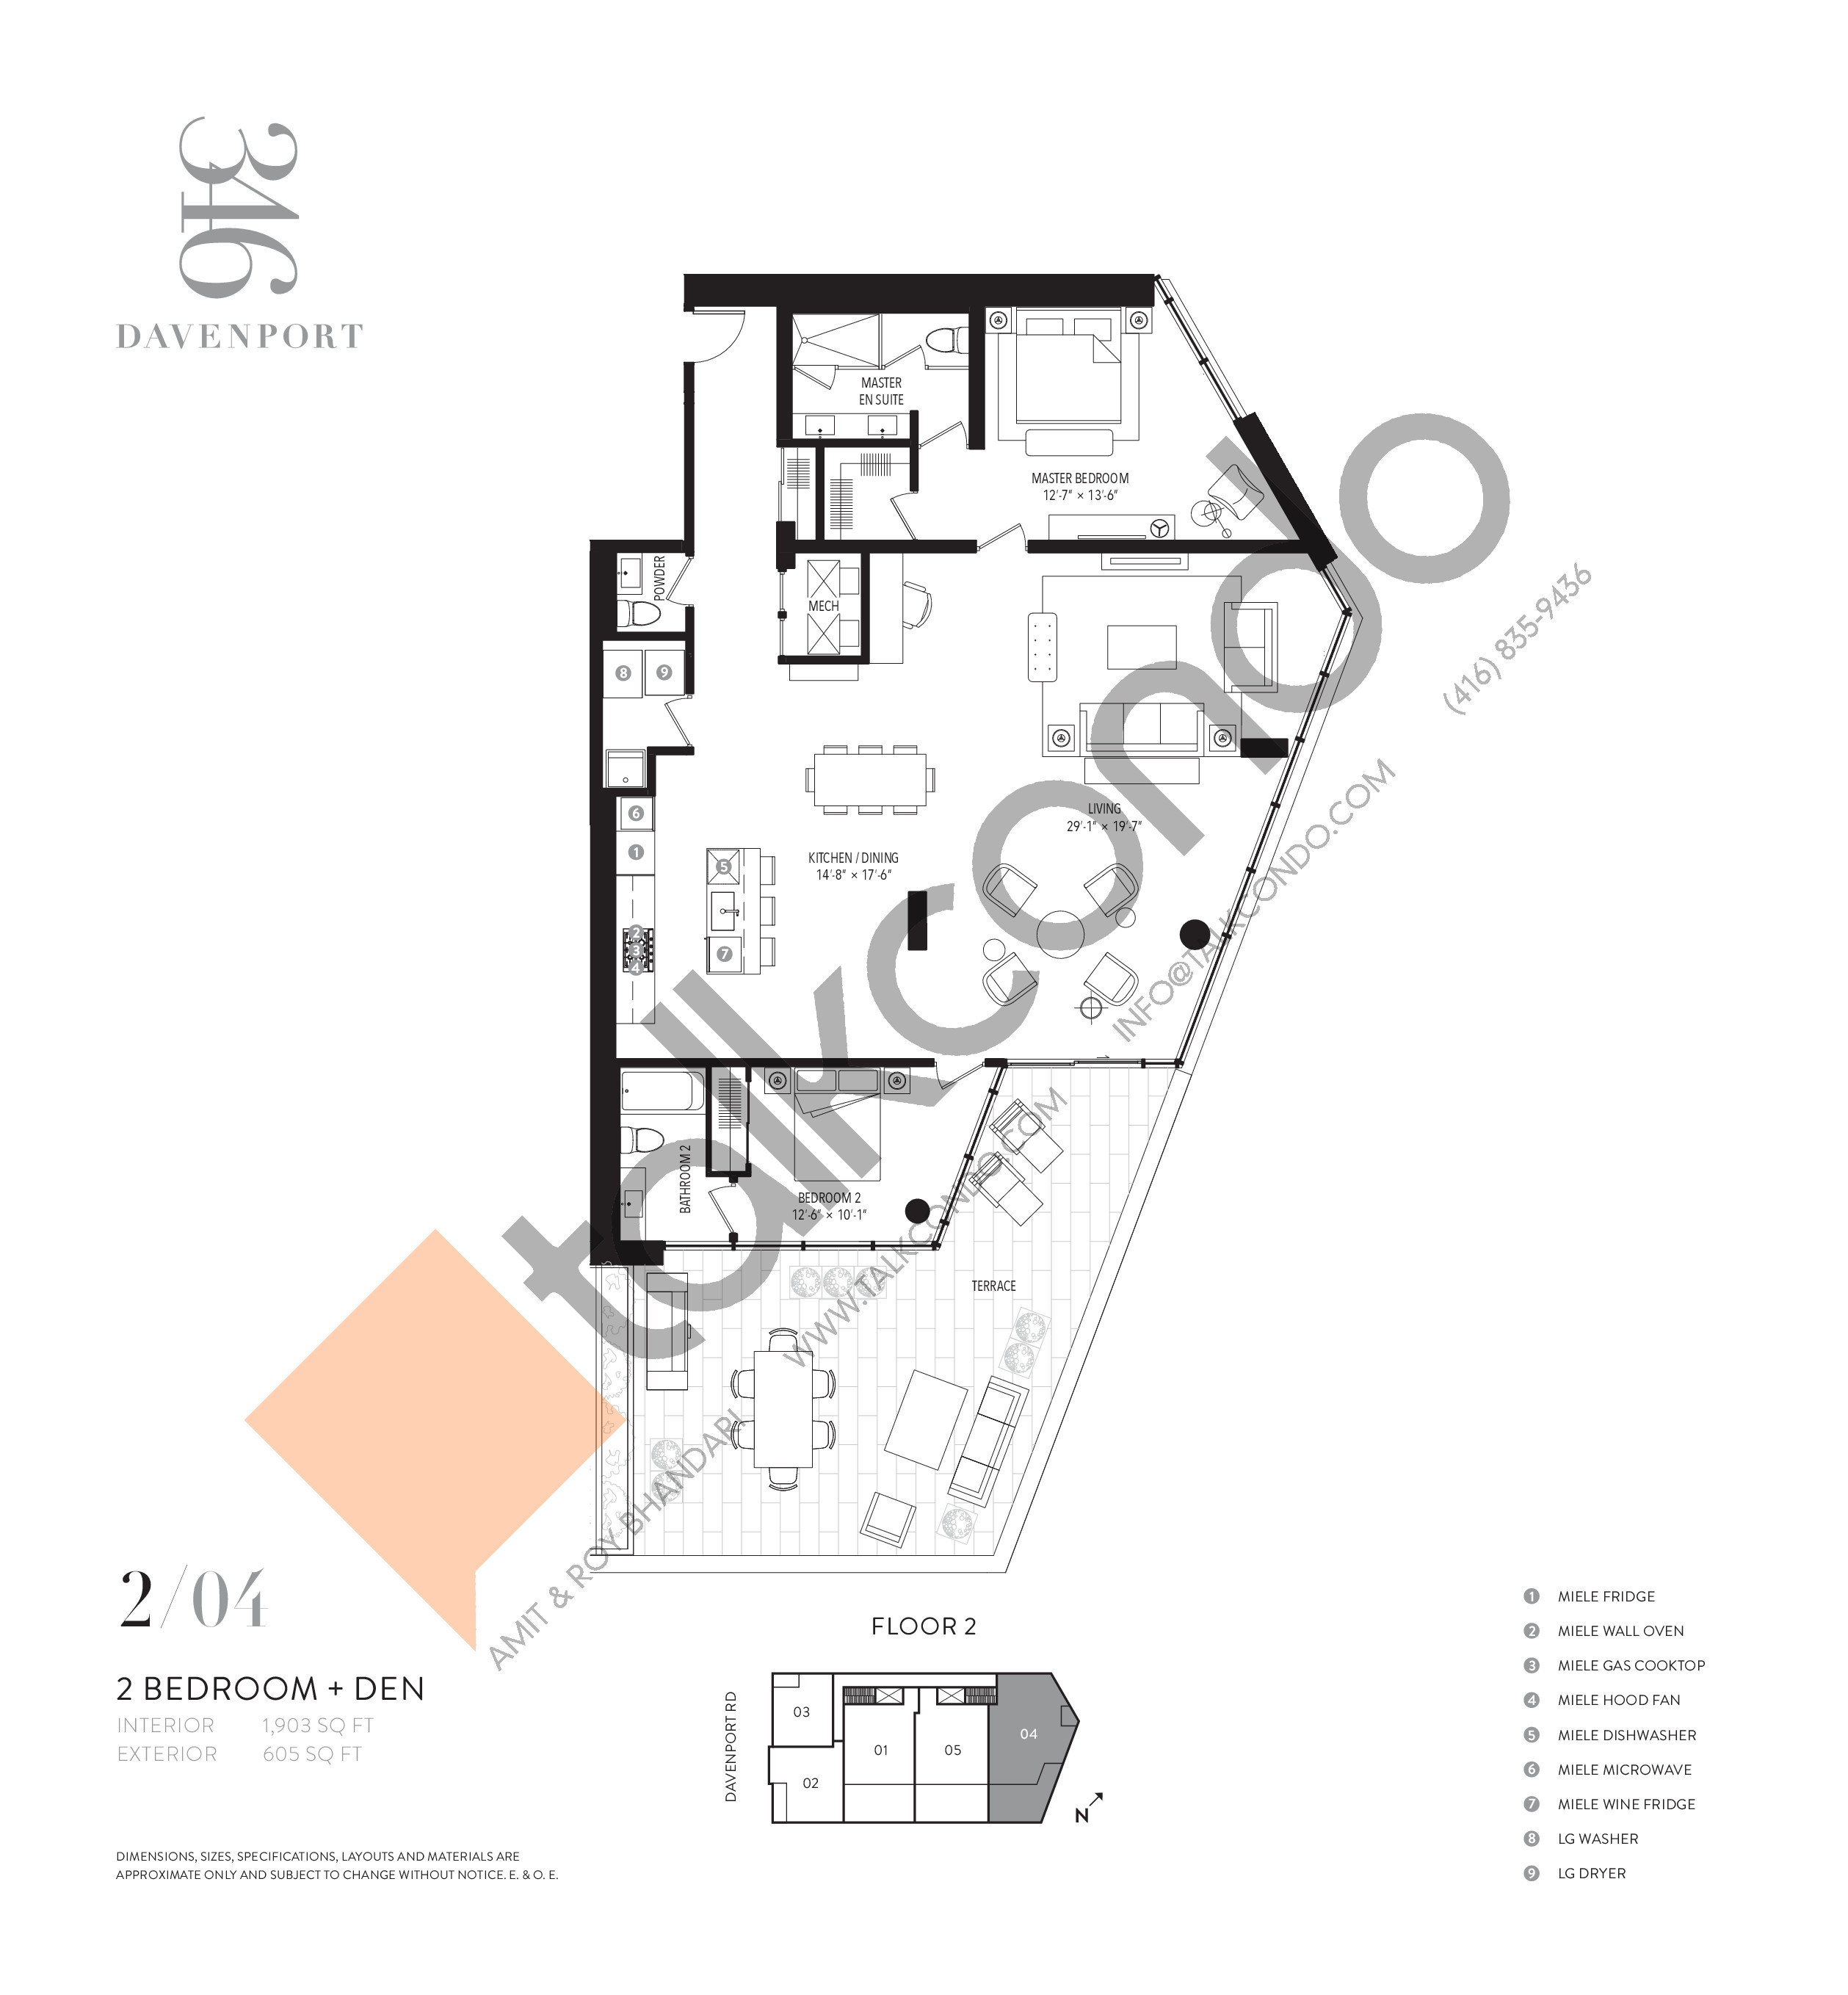 204 Floor Plan at 346 Davenport Condos - 1903 sq.ft